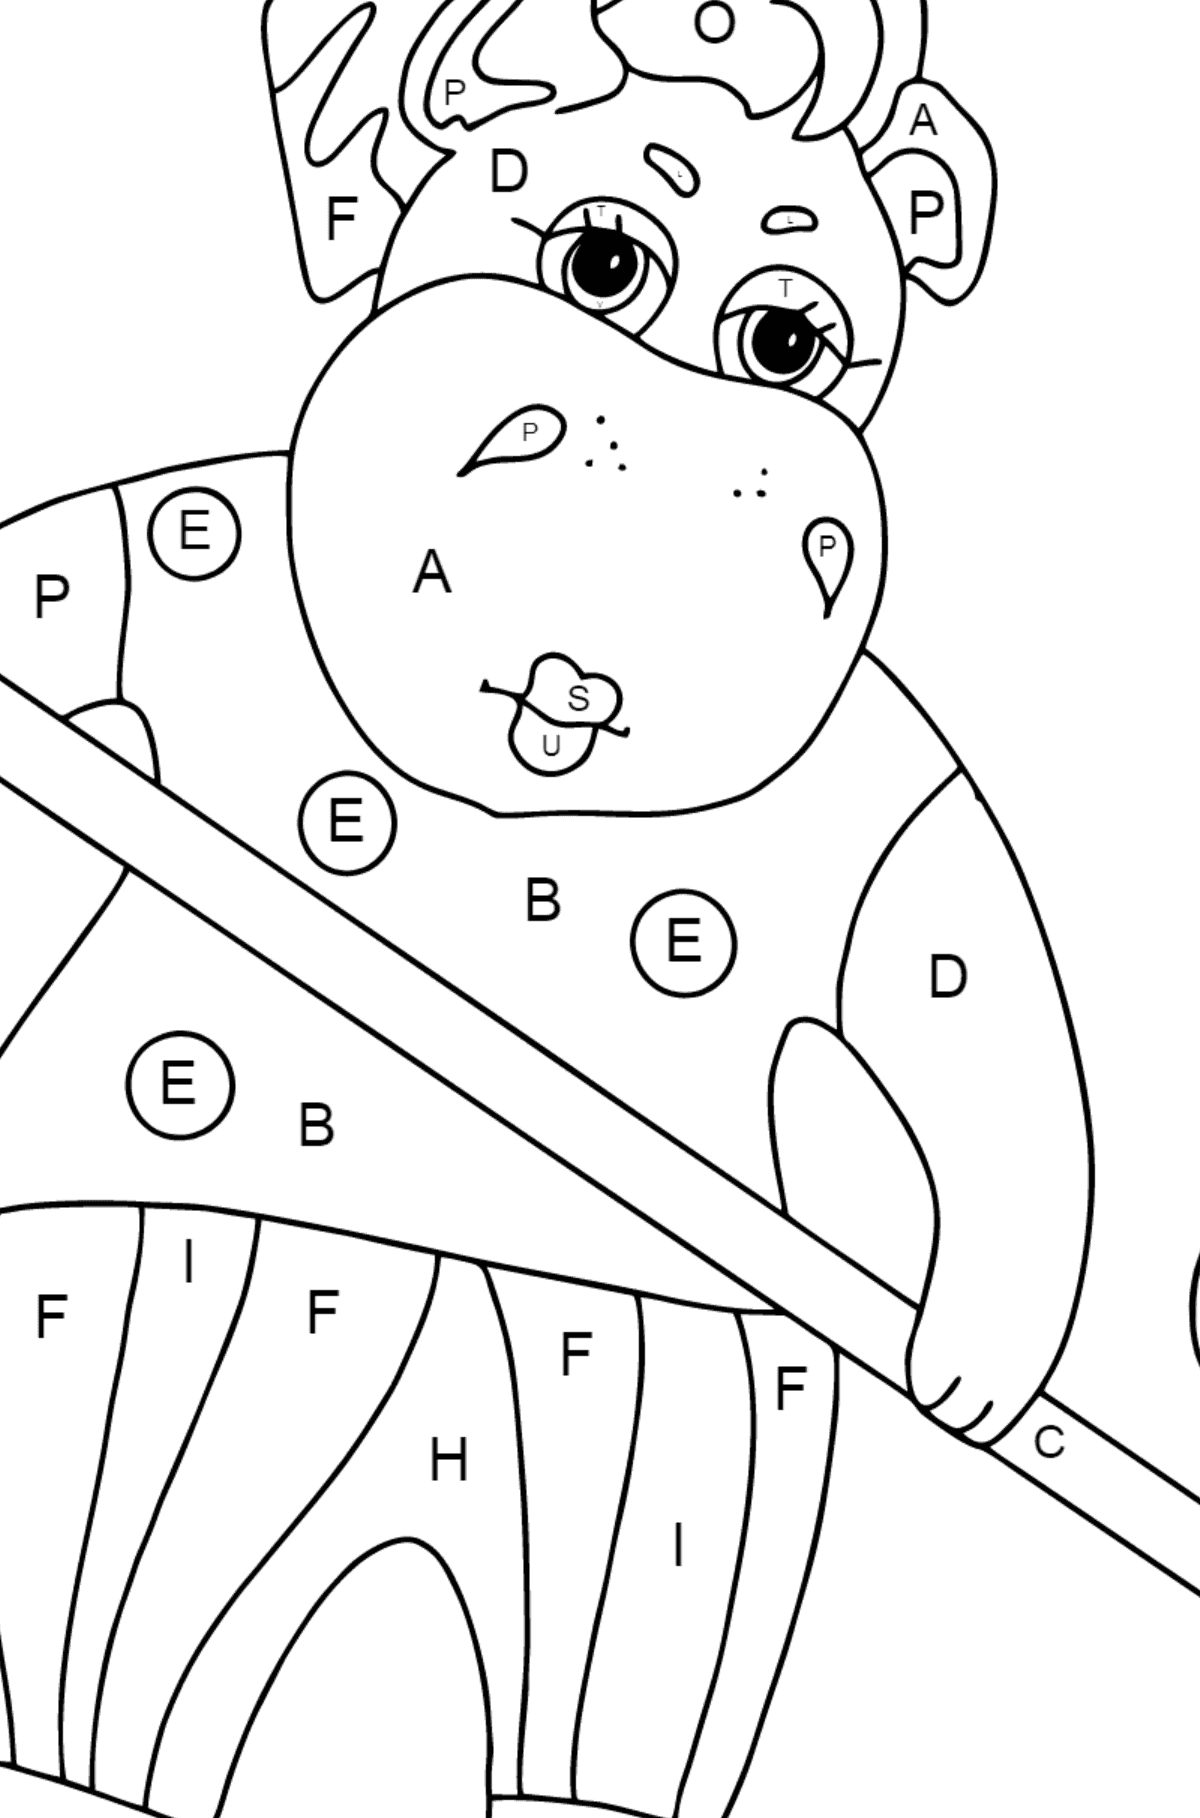 Coloring Page - A Hippo is Sweeping Autumn Leaves for Children  - Color by Letters